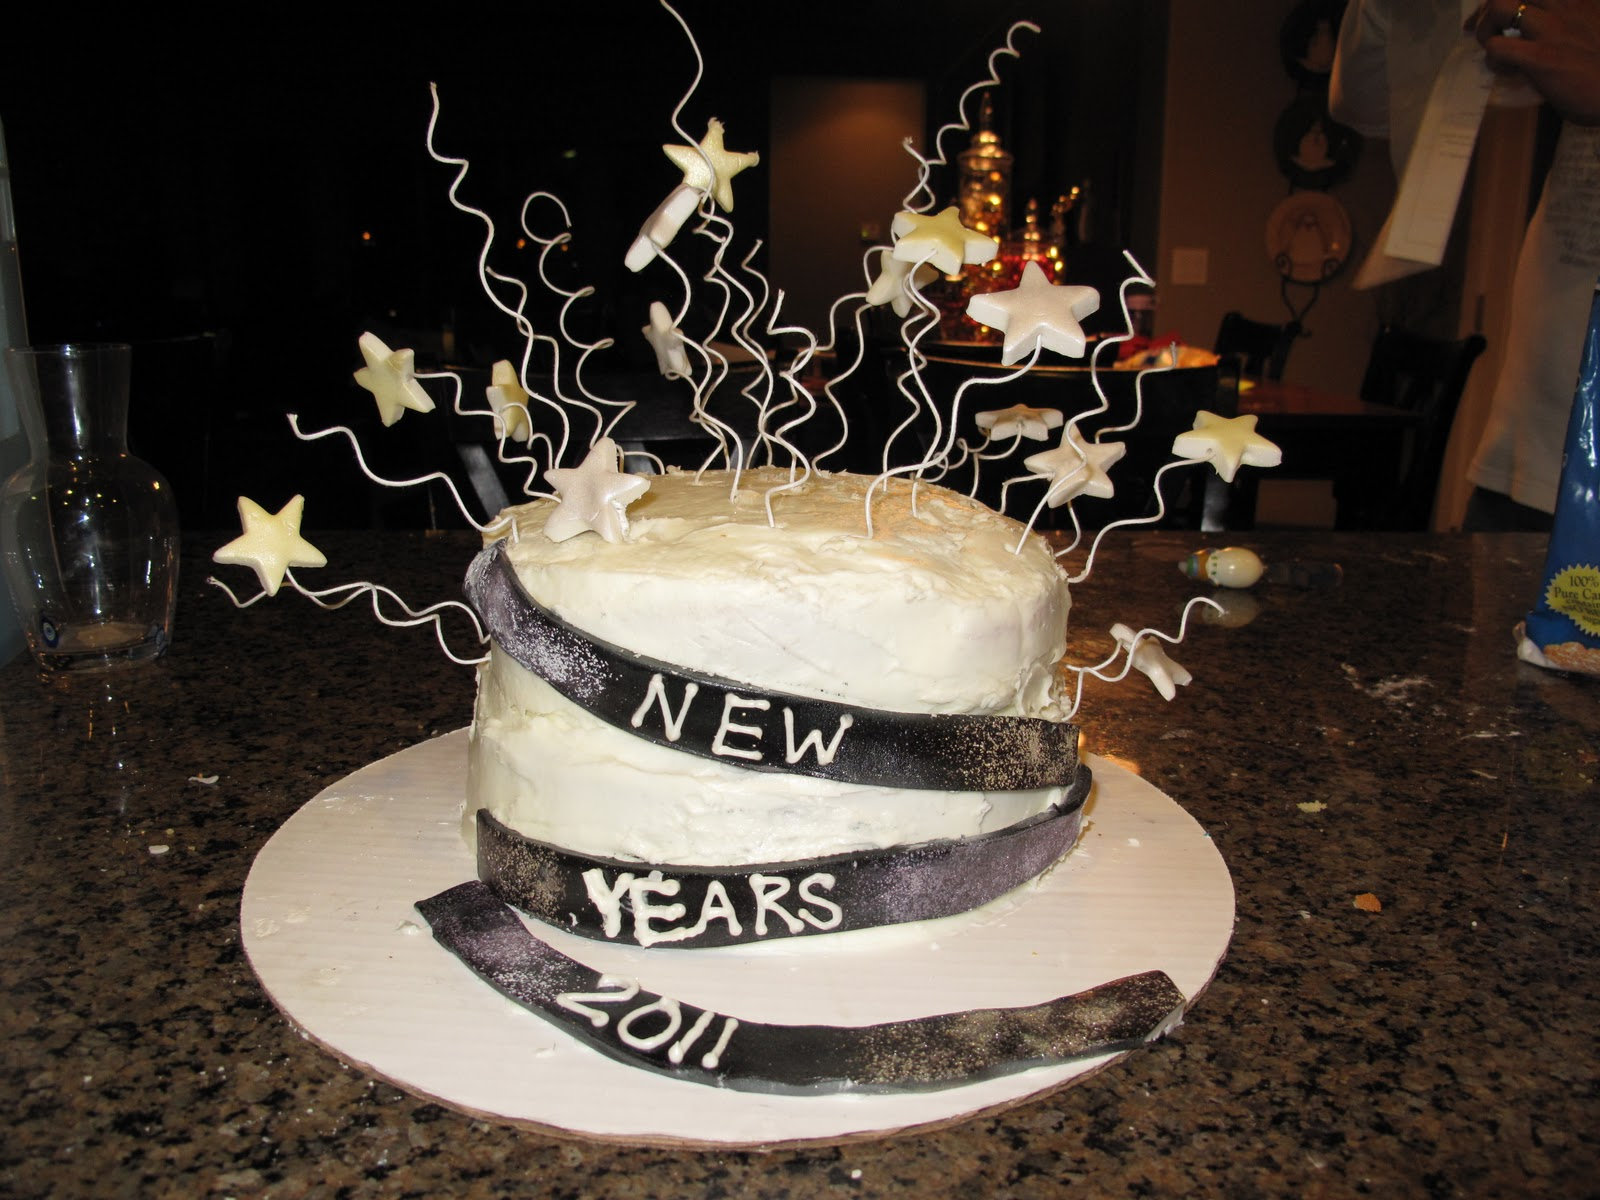 Cake Pictures New : The little Baker Girl: New Years Eve Cake